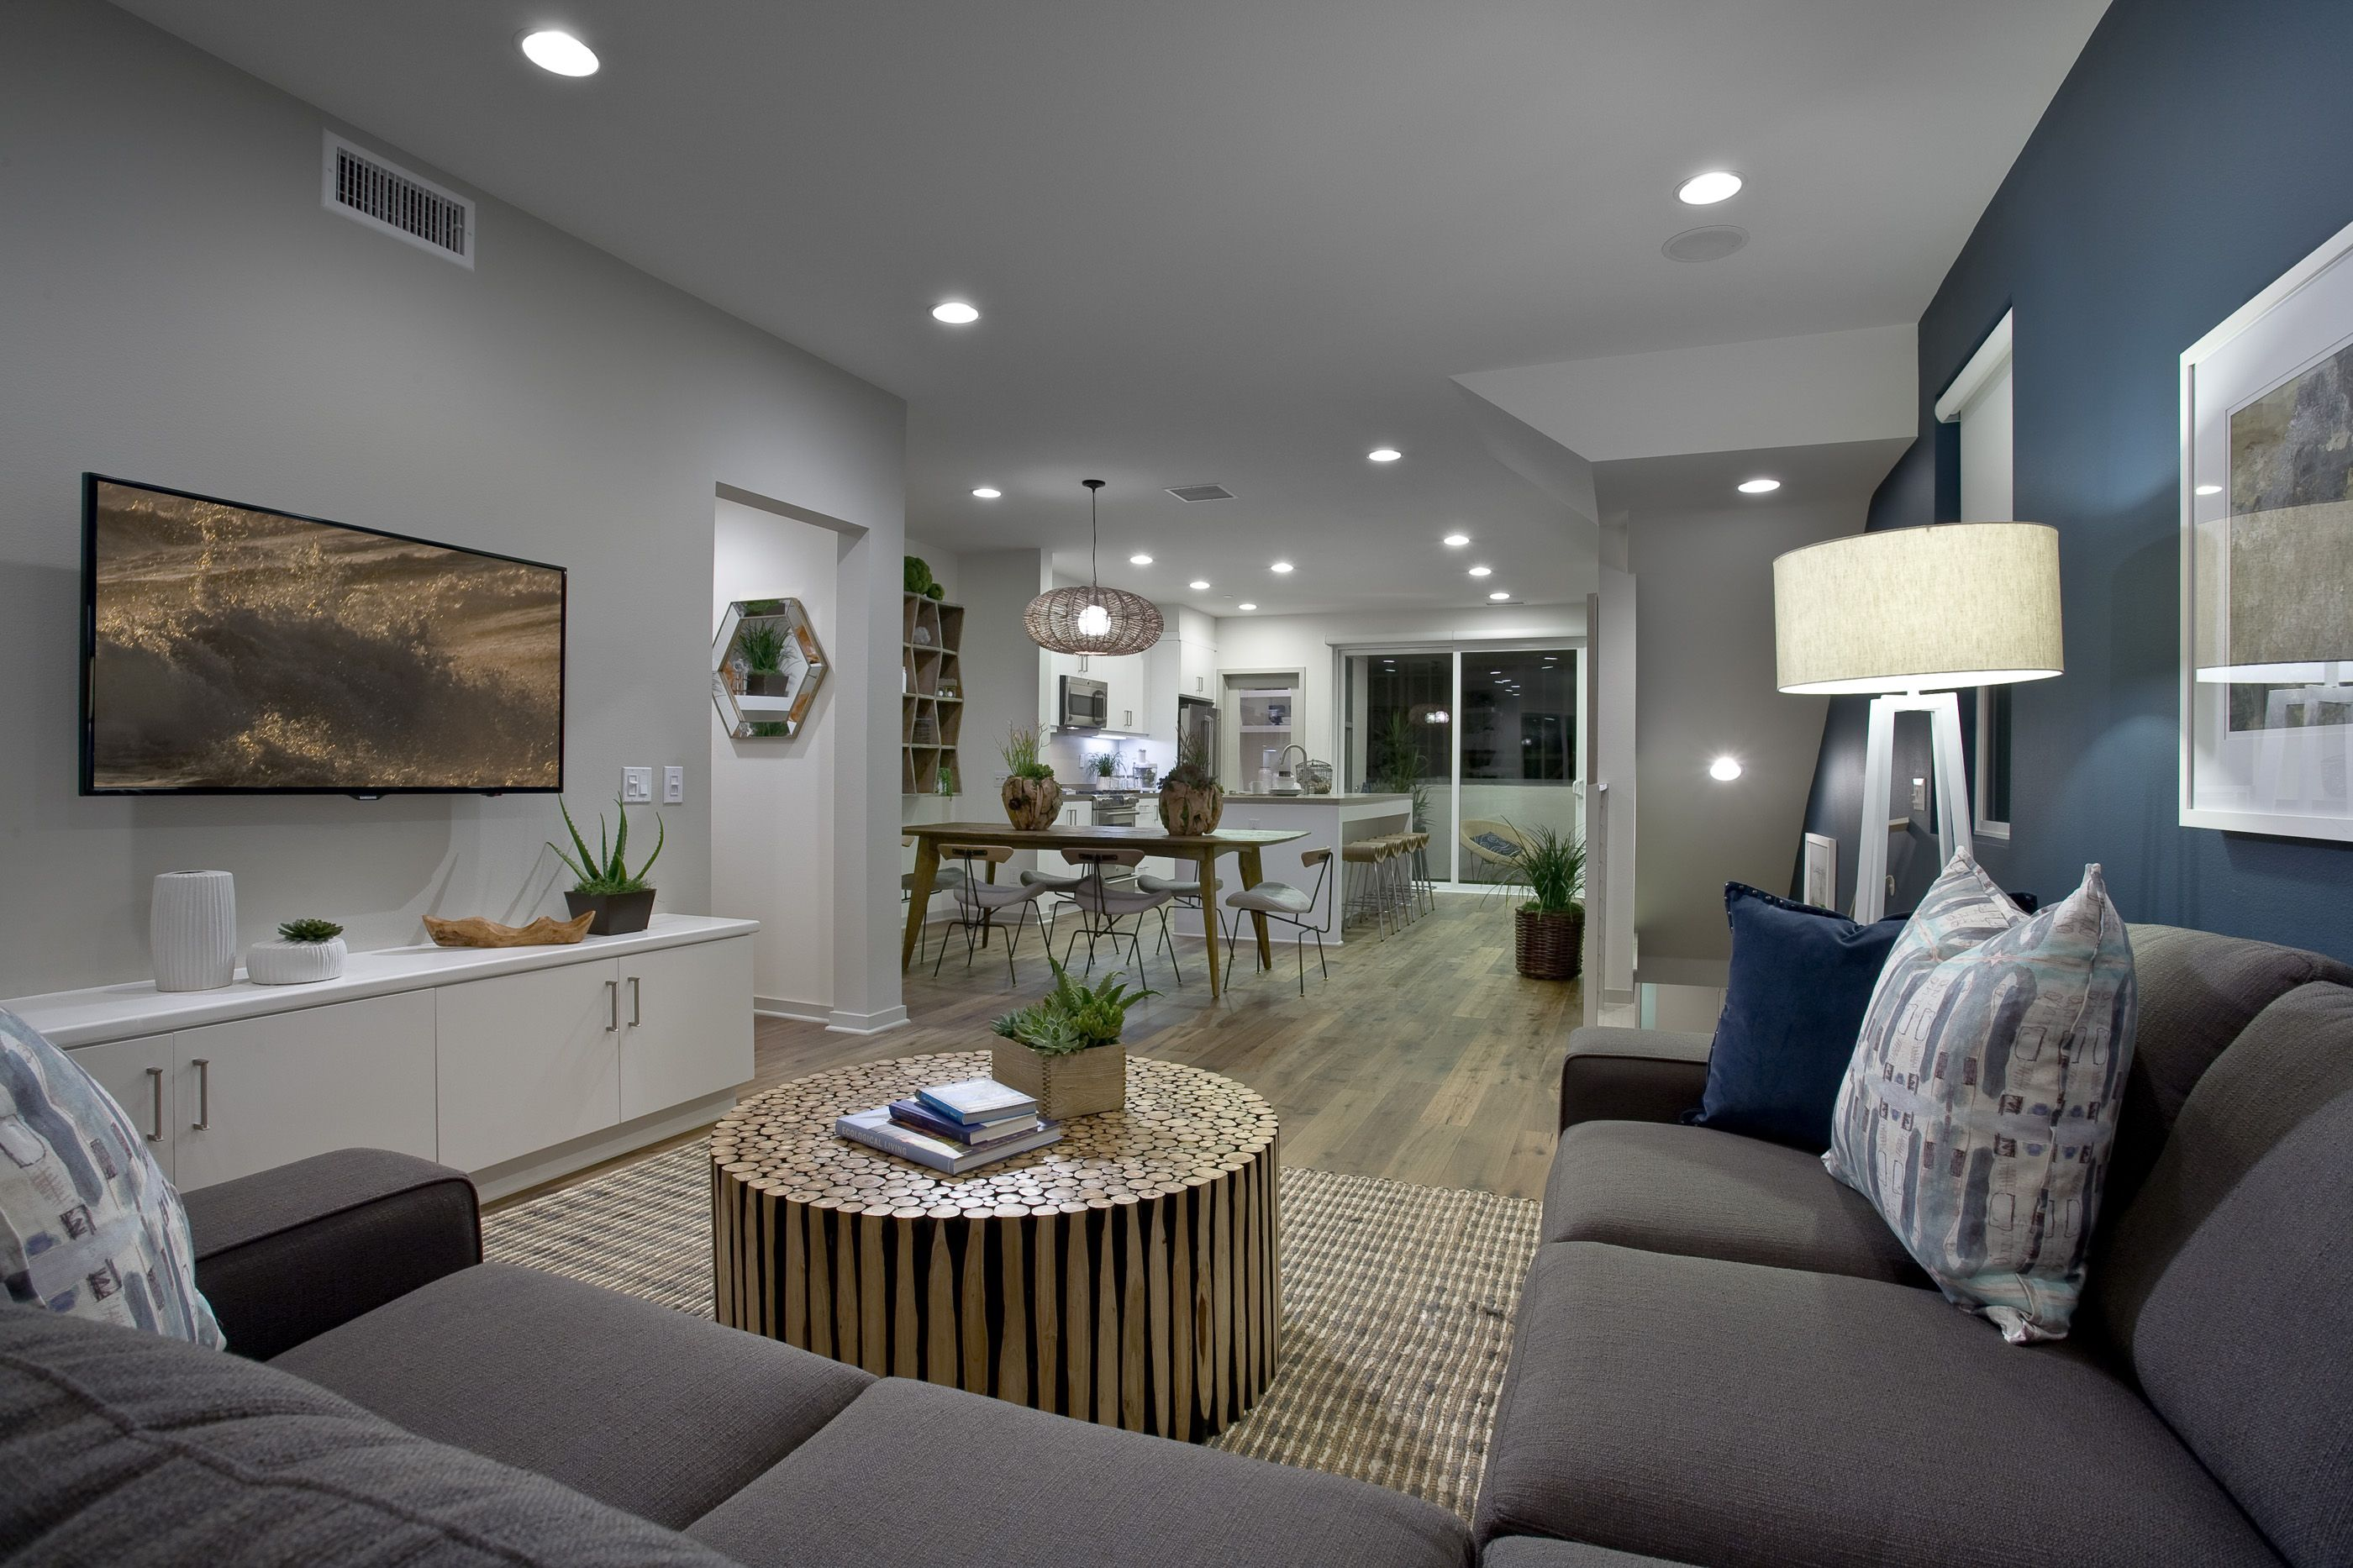 Costa mesa is one of southern californias most sought